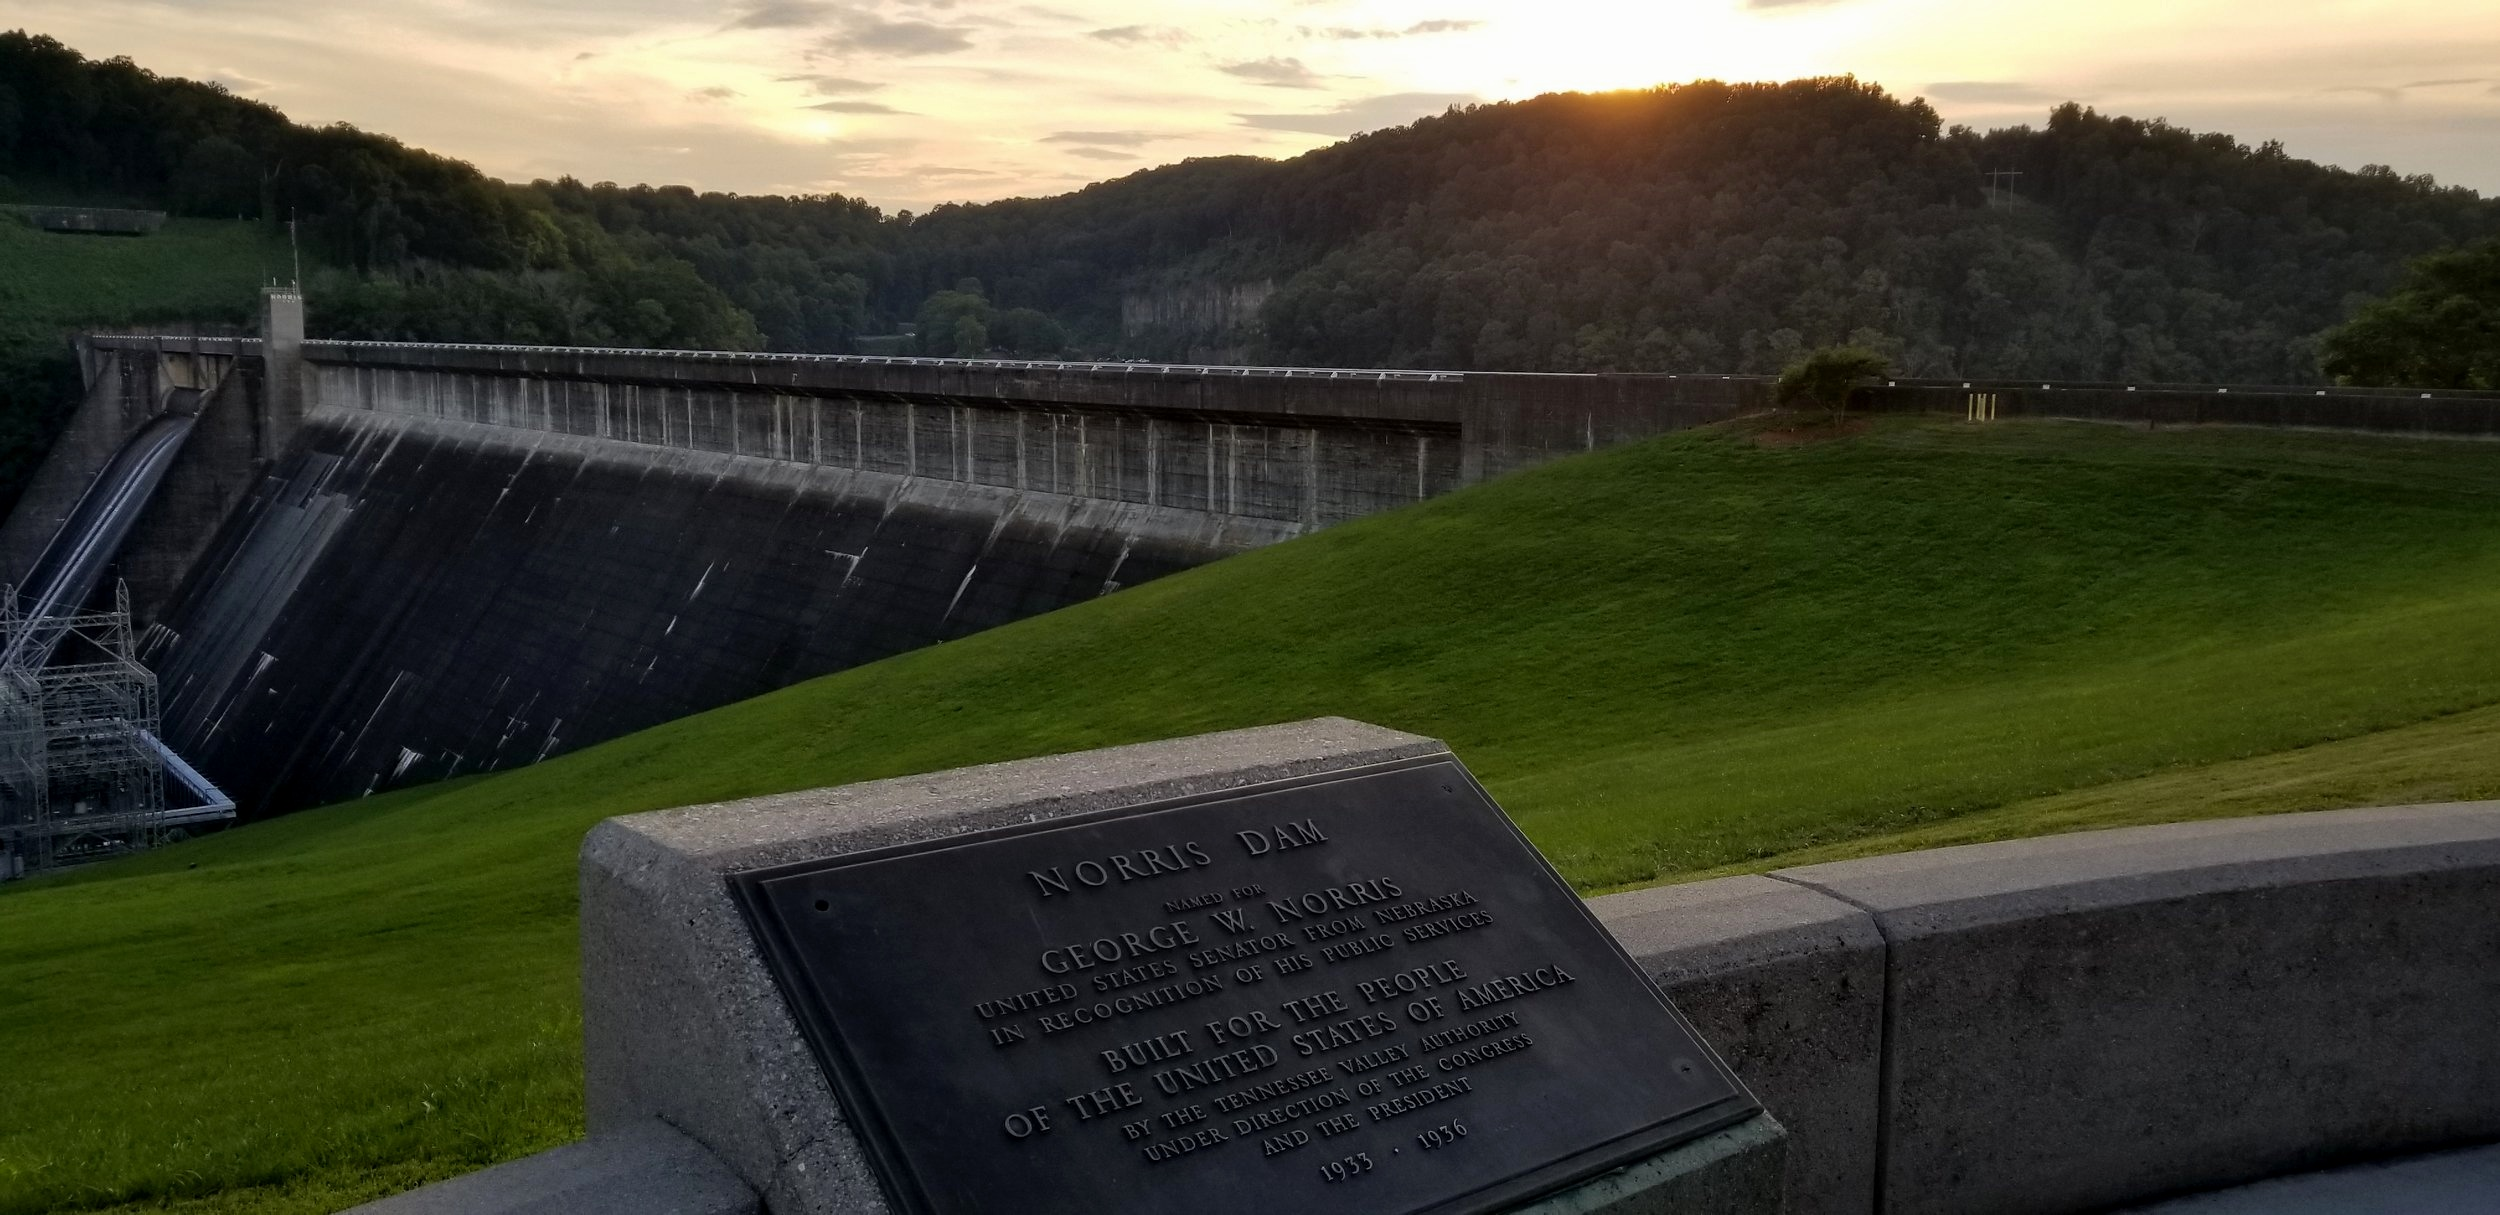 Norris Dam was the first built by the Tennessee Valley Authority as part of the New Deal.. Today, hundreds of acres on both sides of the dam form Norris Dam State Park, a place known for its rustic setting, history and recreational opportunities.